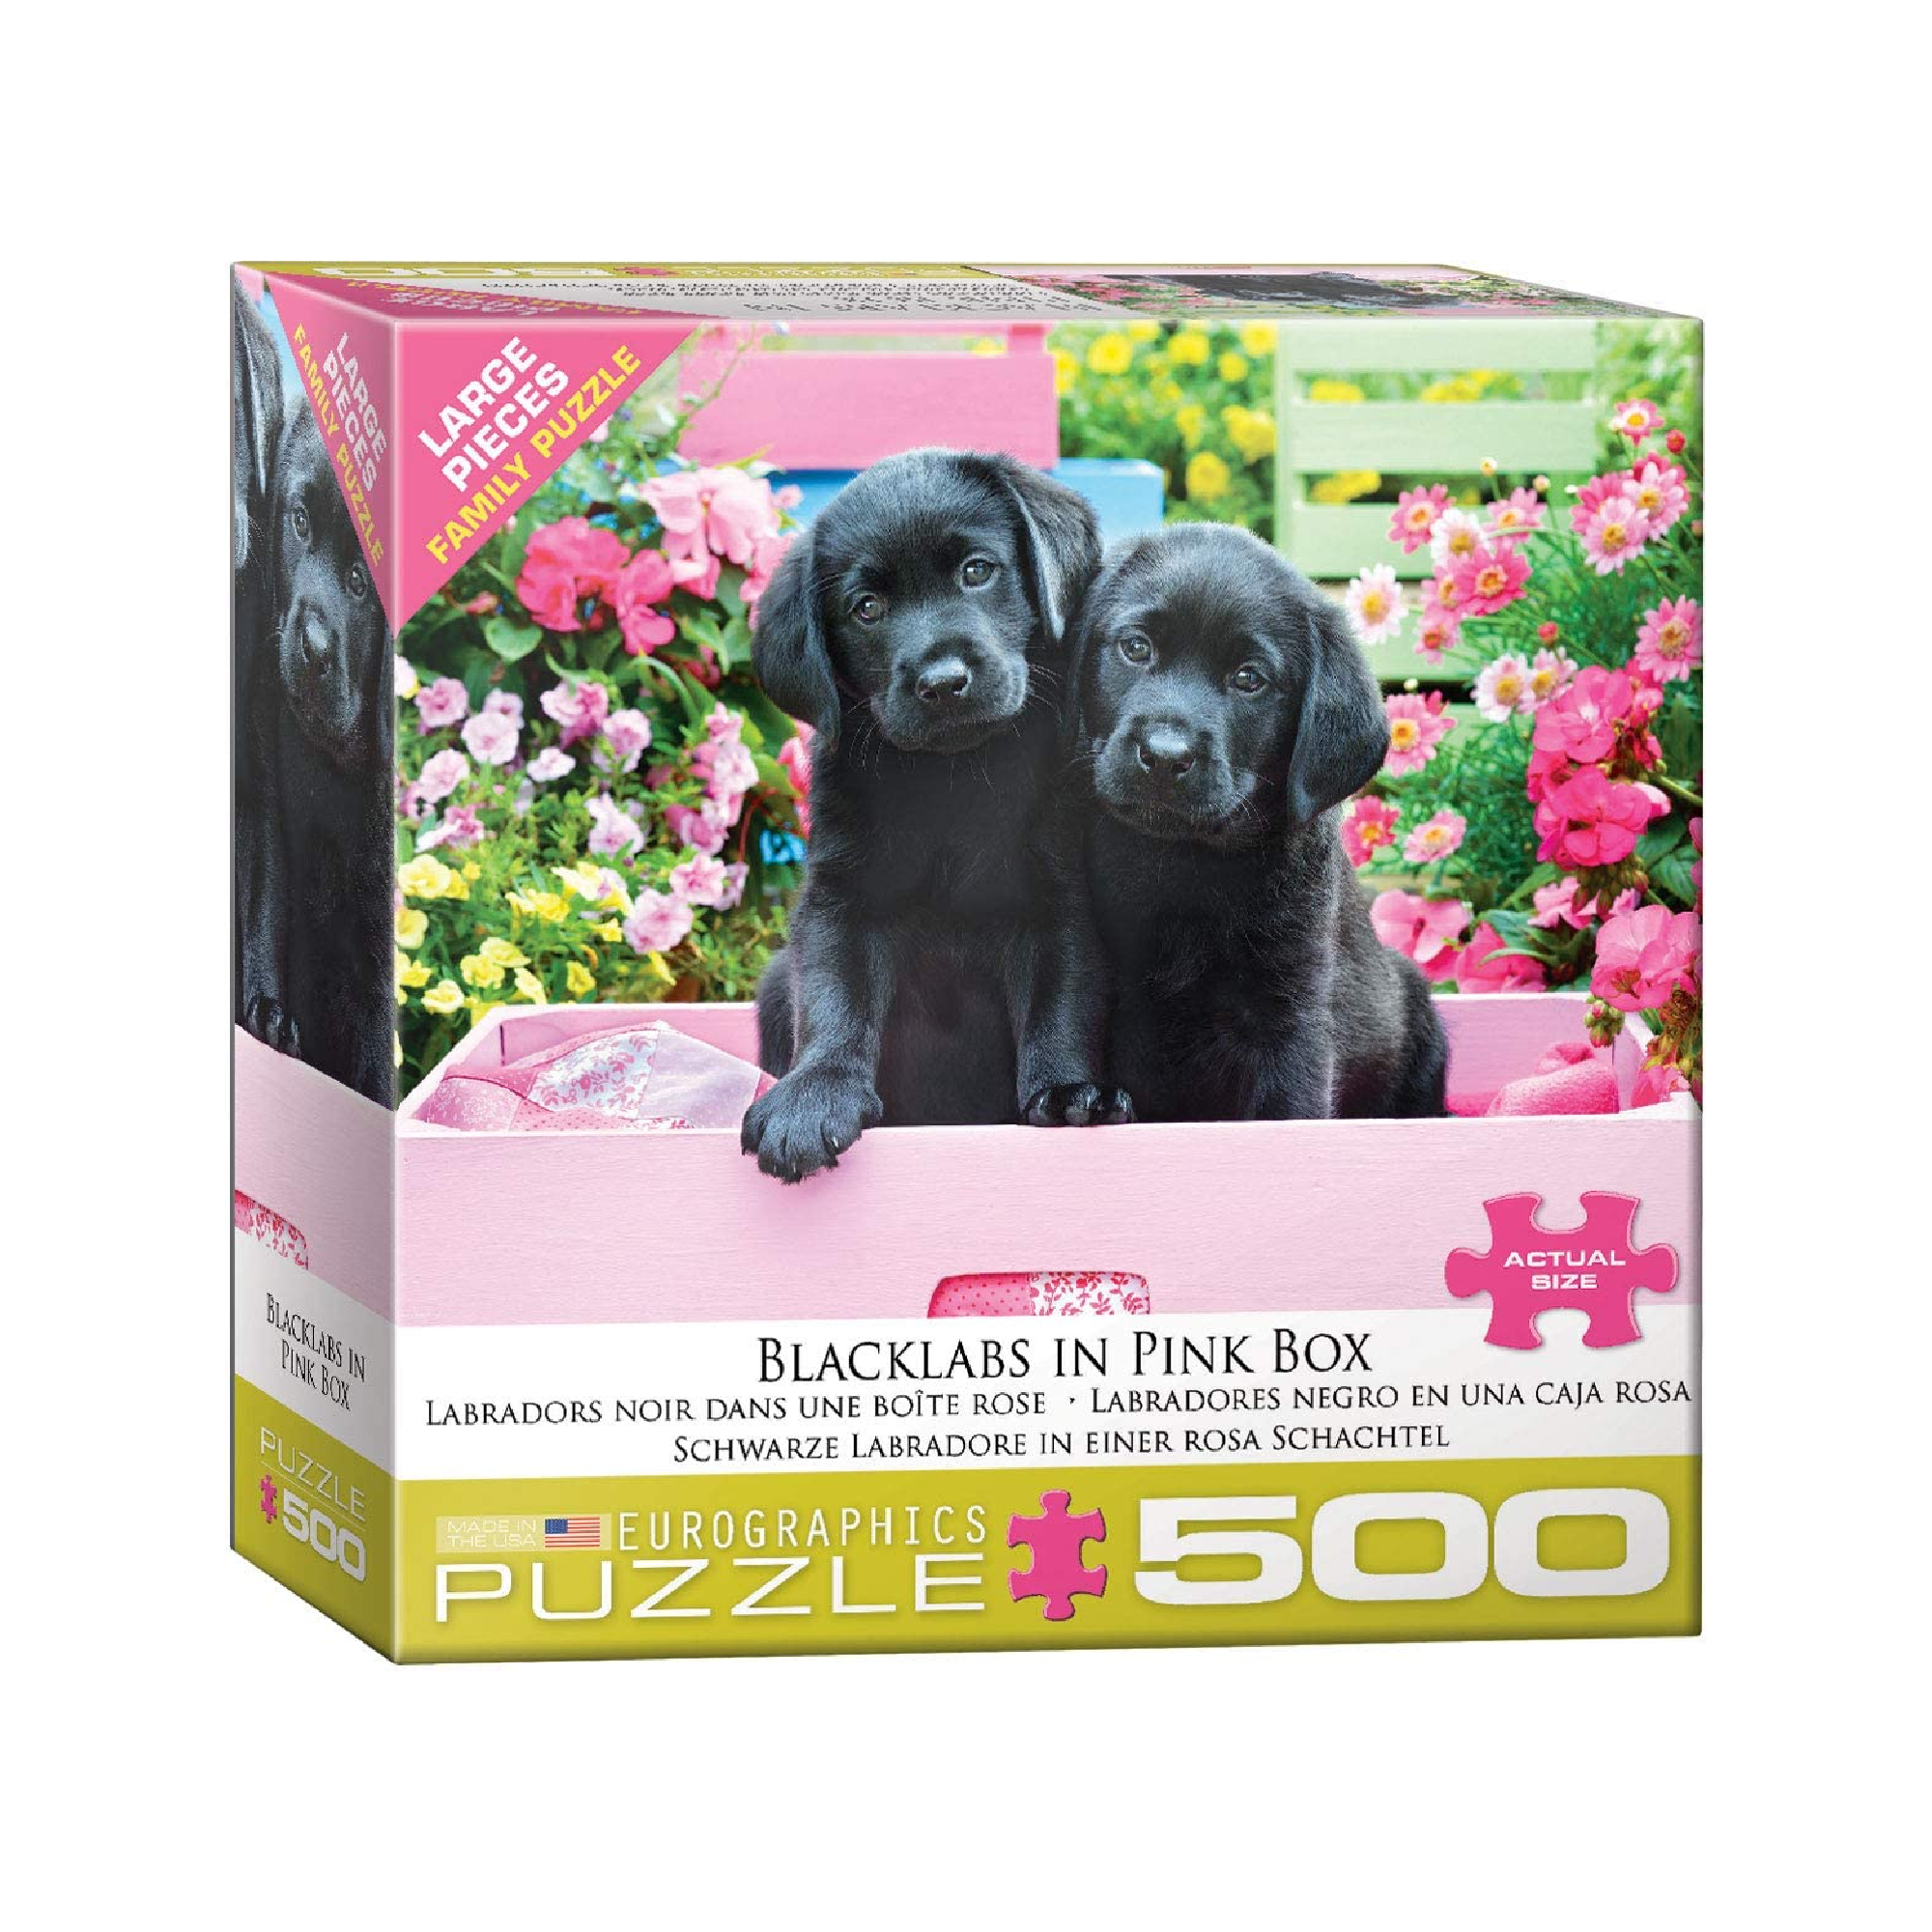 Eurographics Puzzle 500: Black Labs in Pink Box